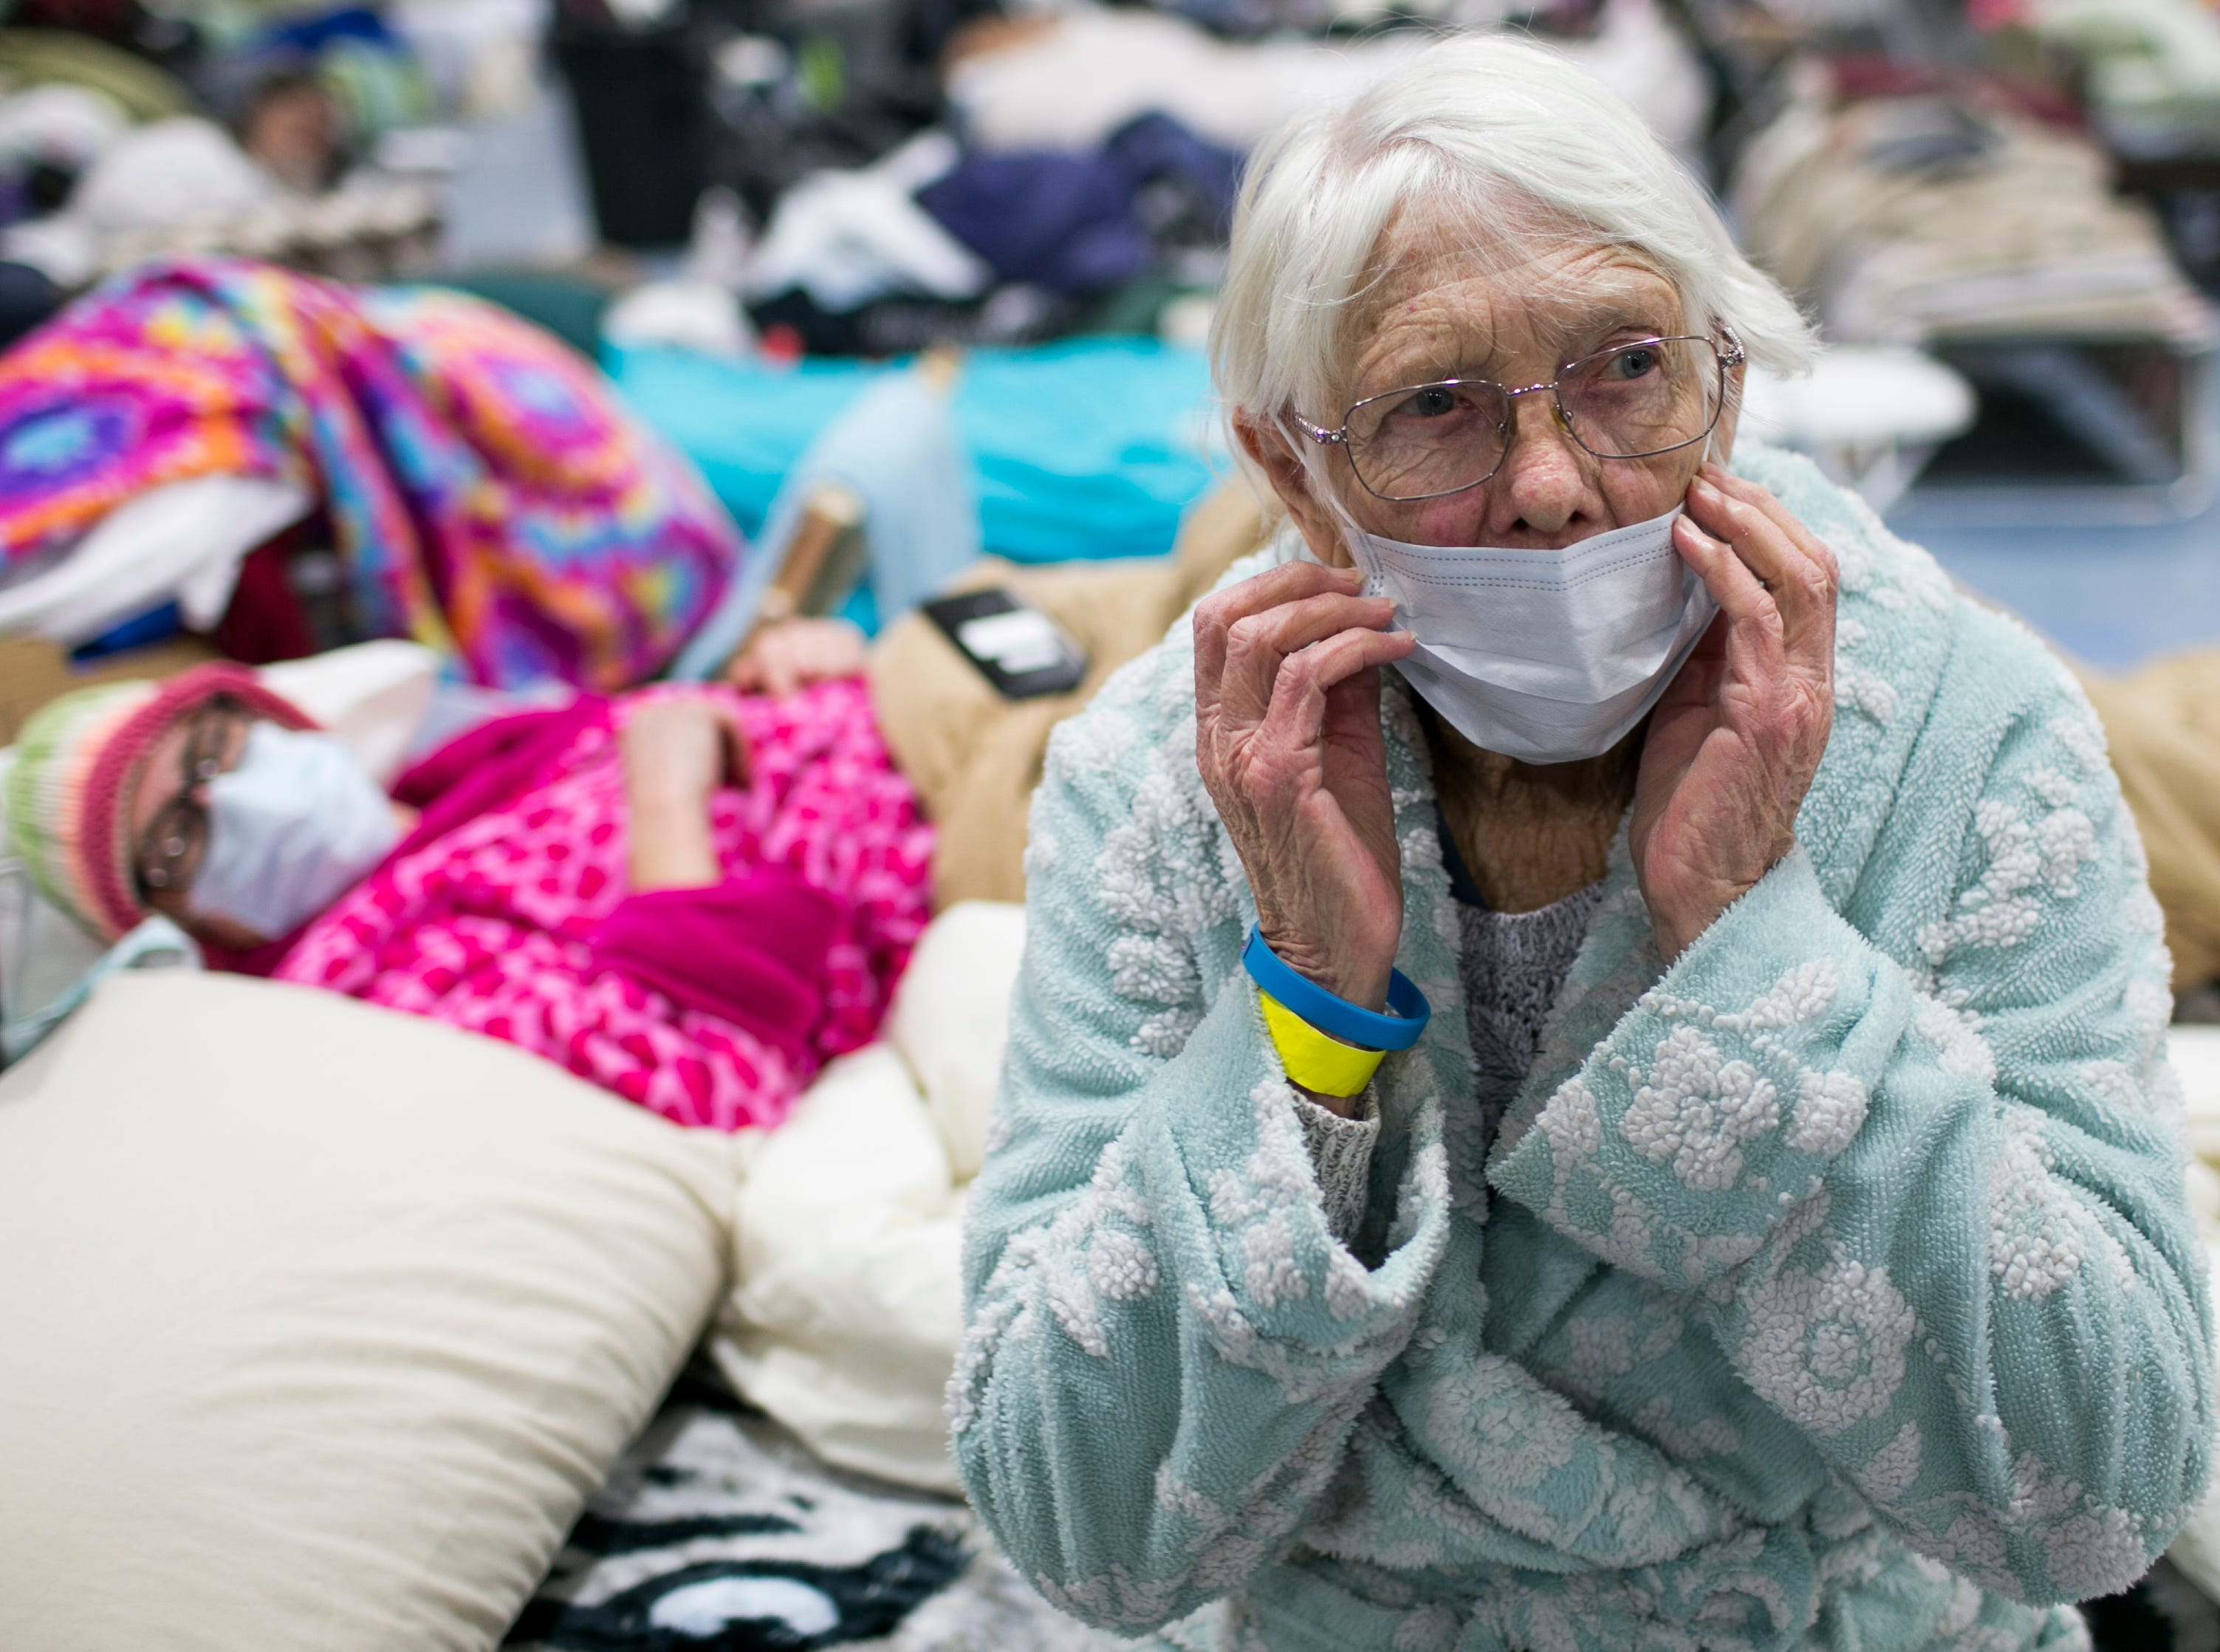 85-year-old Minna Anderson, right, sits on a bed next to her daughter Libby Andersen, left, at the East Avenue Church Shelter in Chico, California, on Nov. 15, 2018. The two lost everything when the Camp Fire took over their home in Paradise, forcing them to flee.